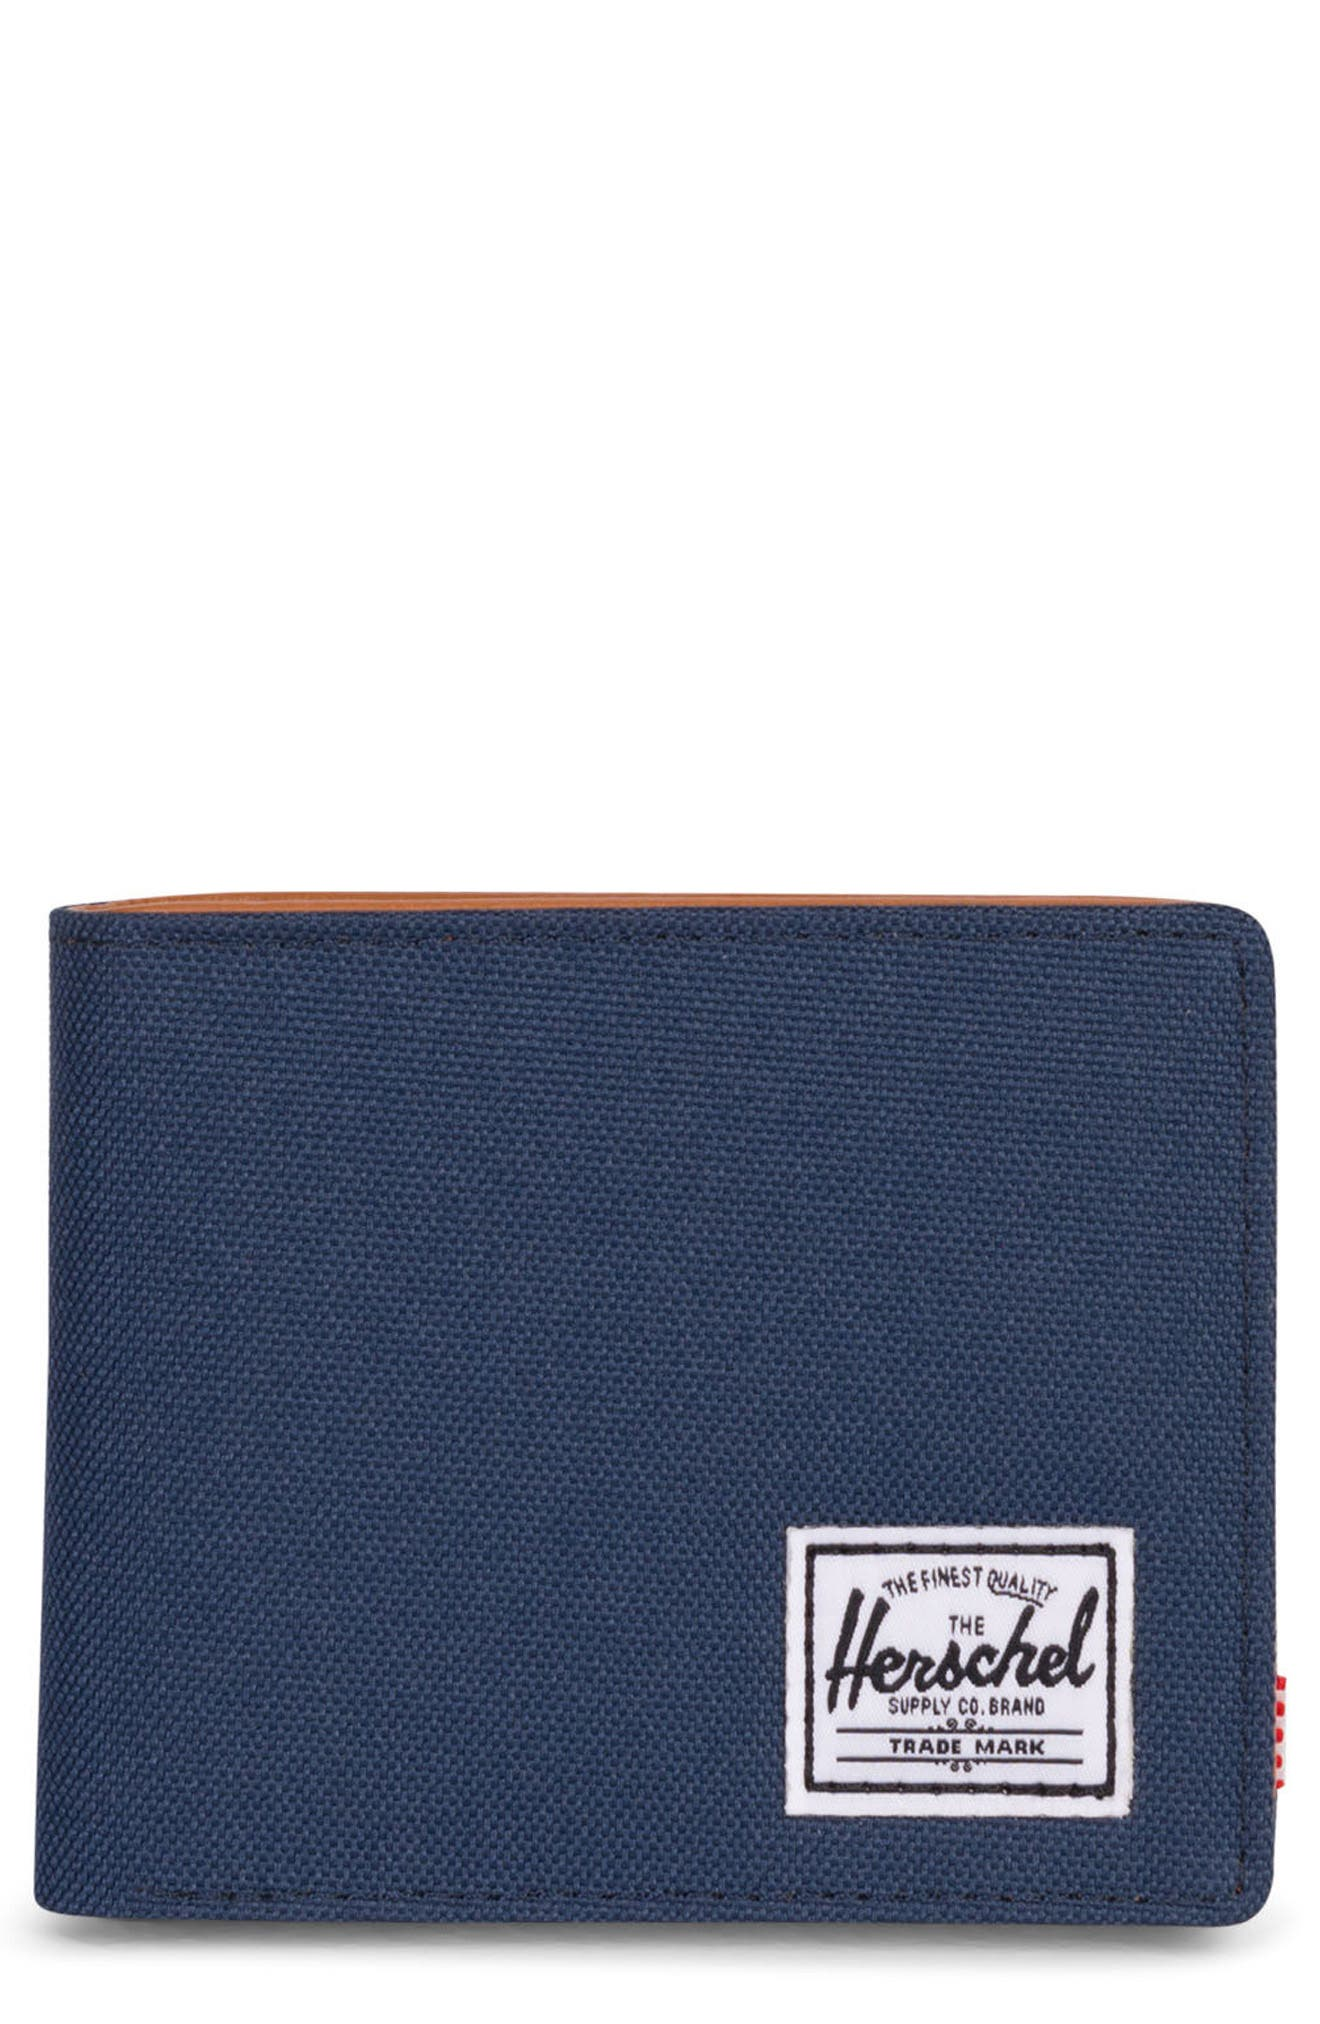 HERSCHEL SUPPLY CO. Hank RFID Bifold Wallet, Main, color, NAVY/ TAN